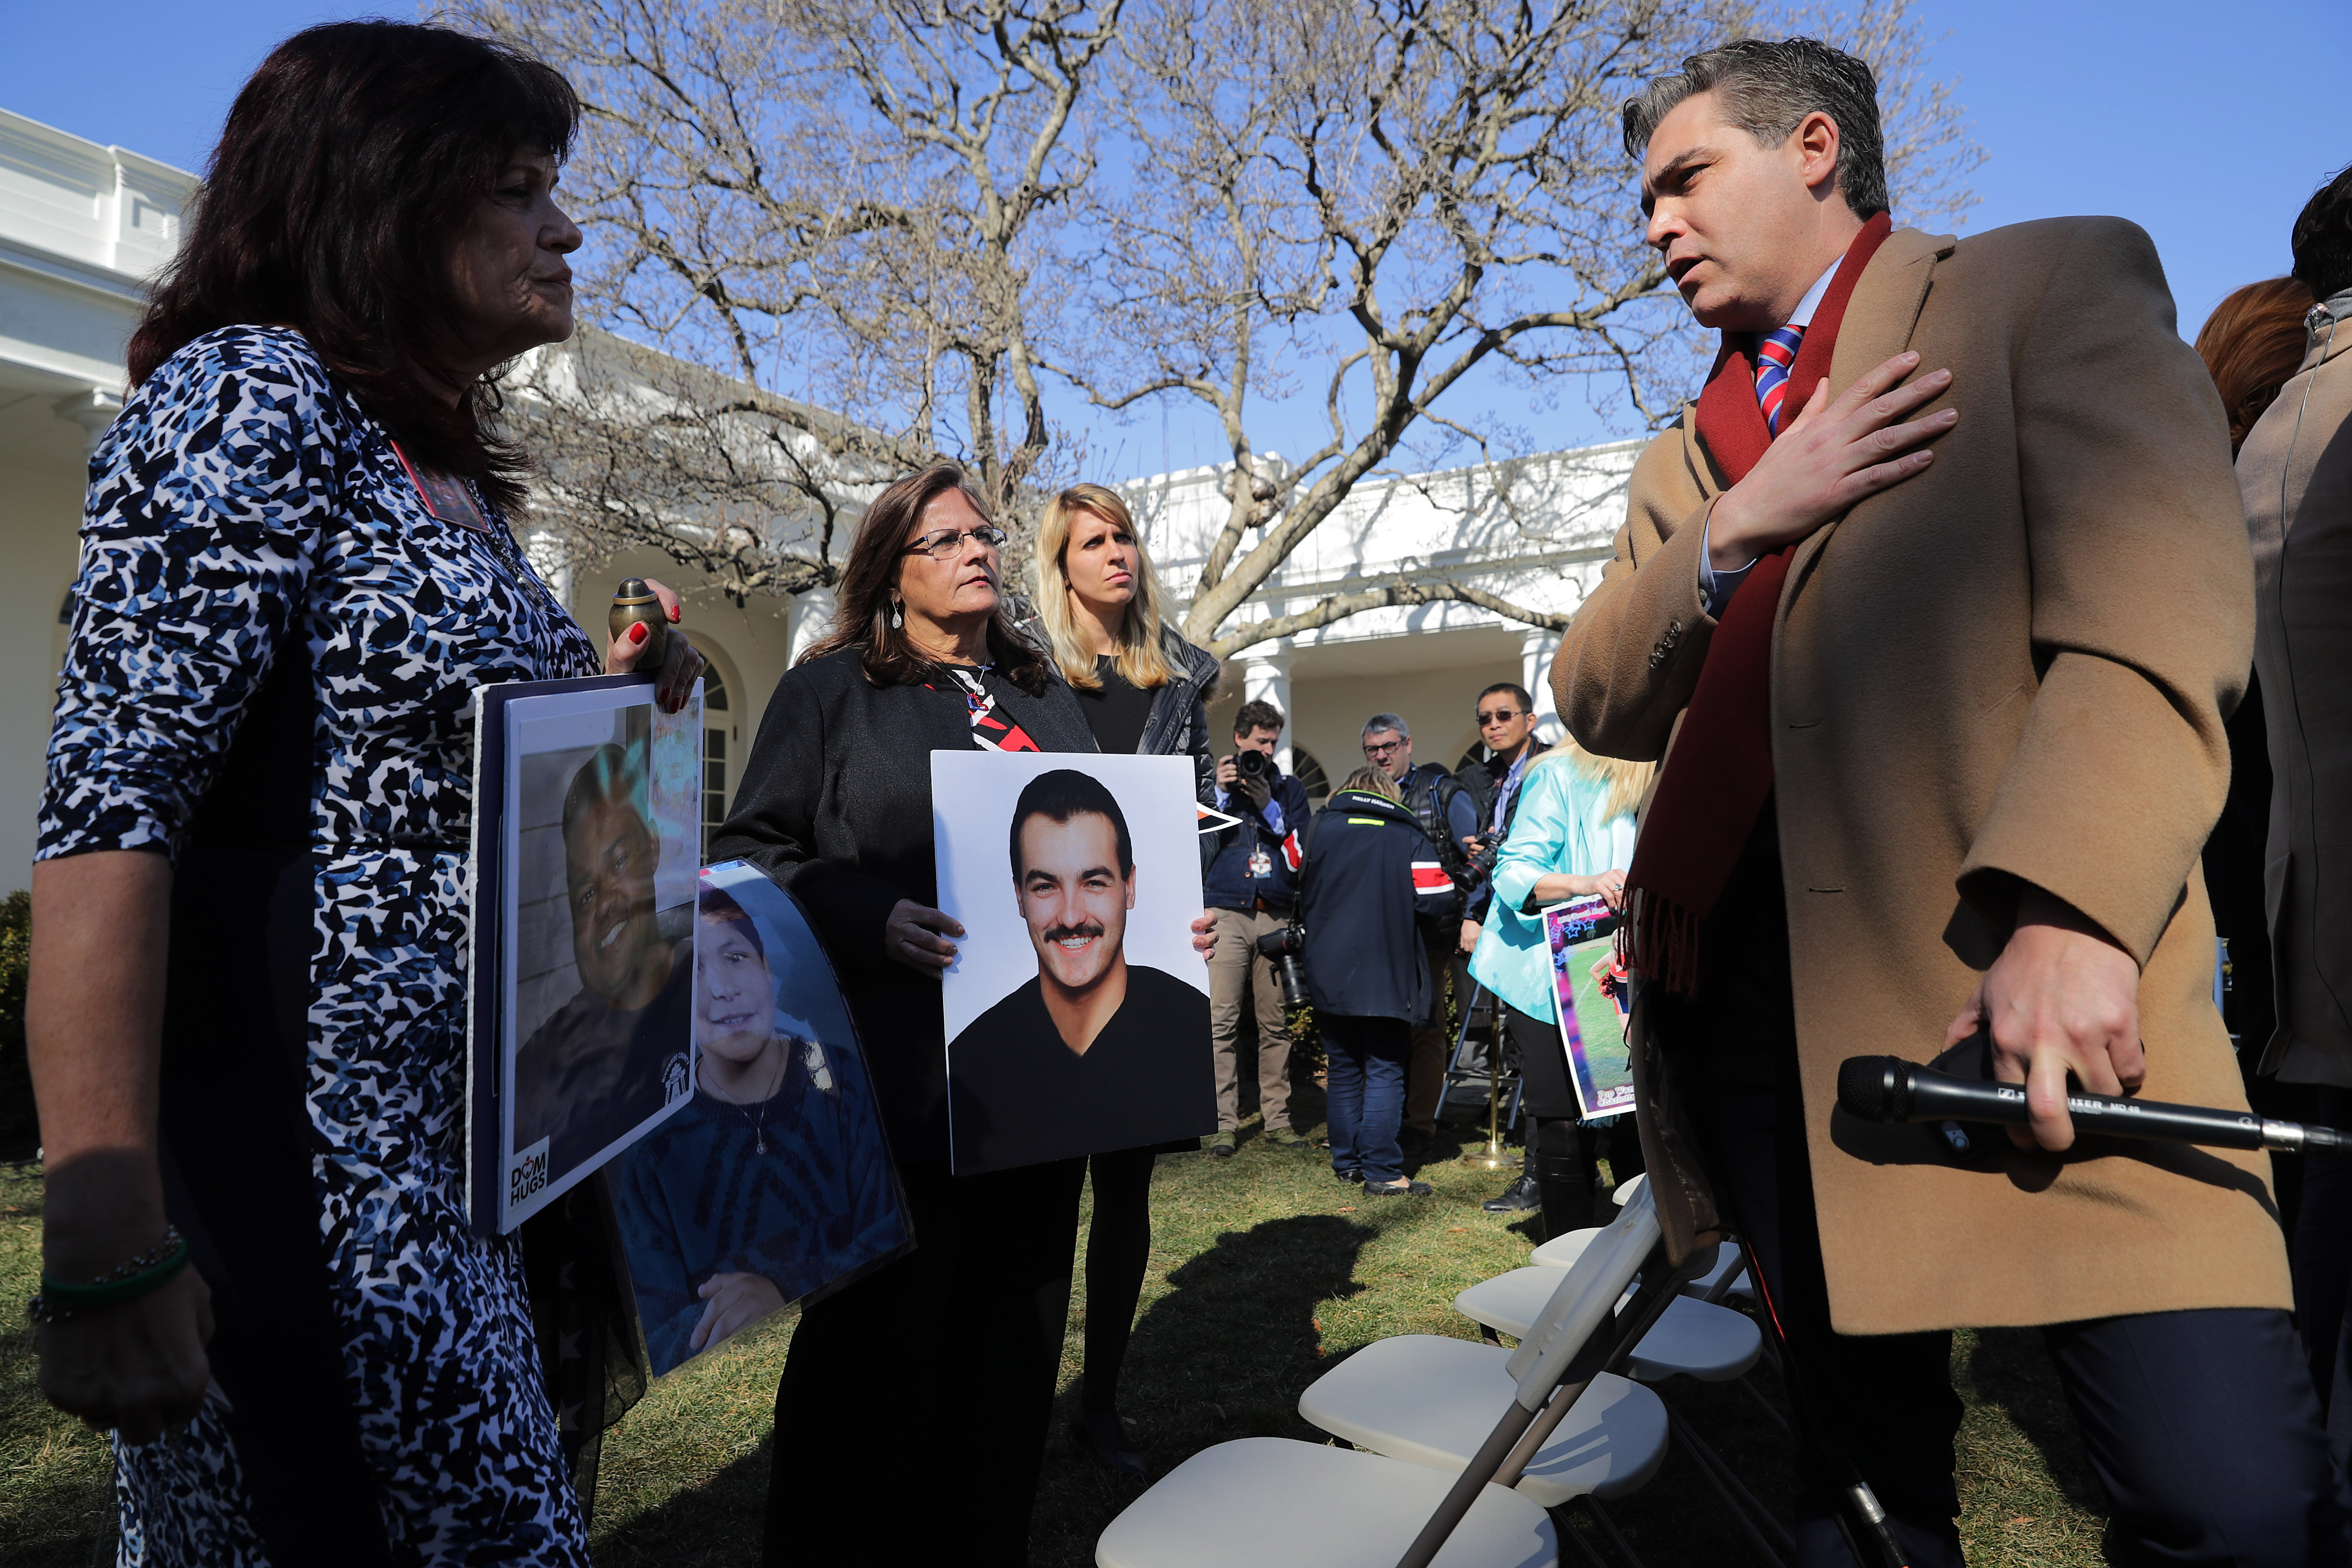 CNN's Jim Acosta (R) talks with 'Angel moms,' including Sabine Durden (L) ... (Photo by Chip Somodevilla/Getty Images)